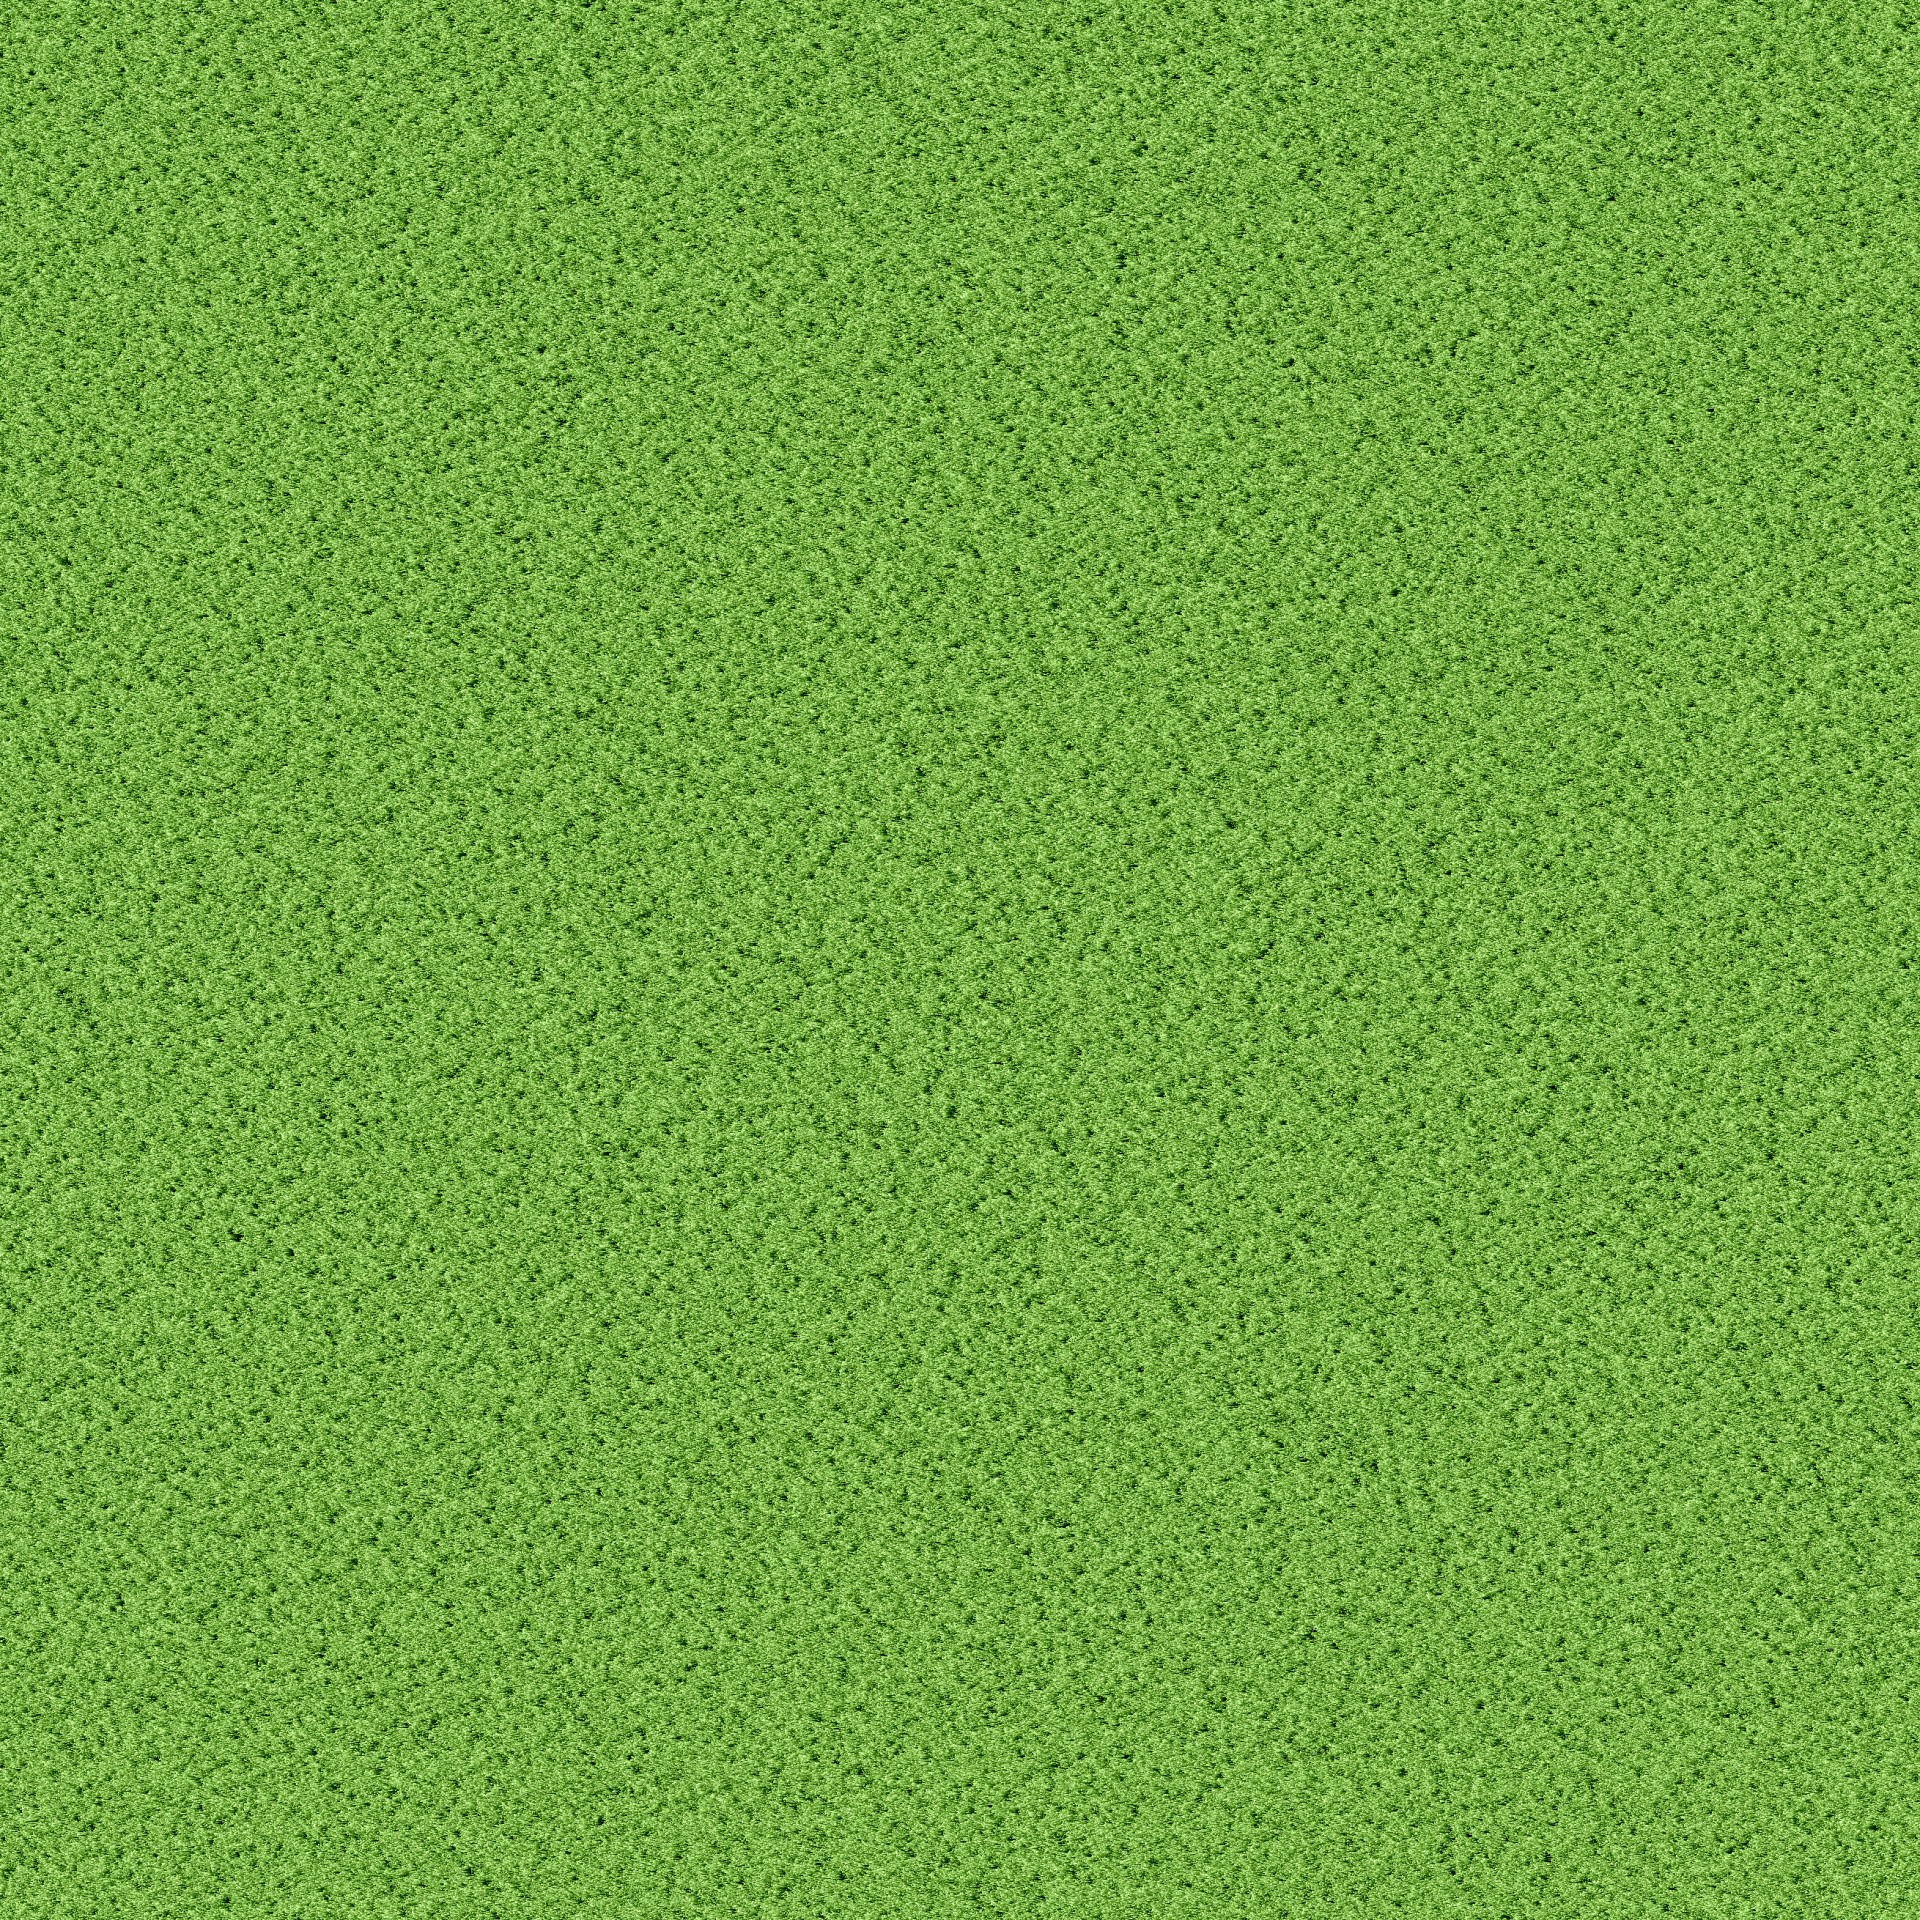 Grass Texture Background Green Free Stock Photo - Public Domain Pictures